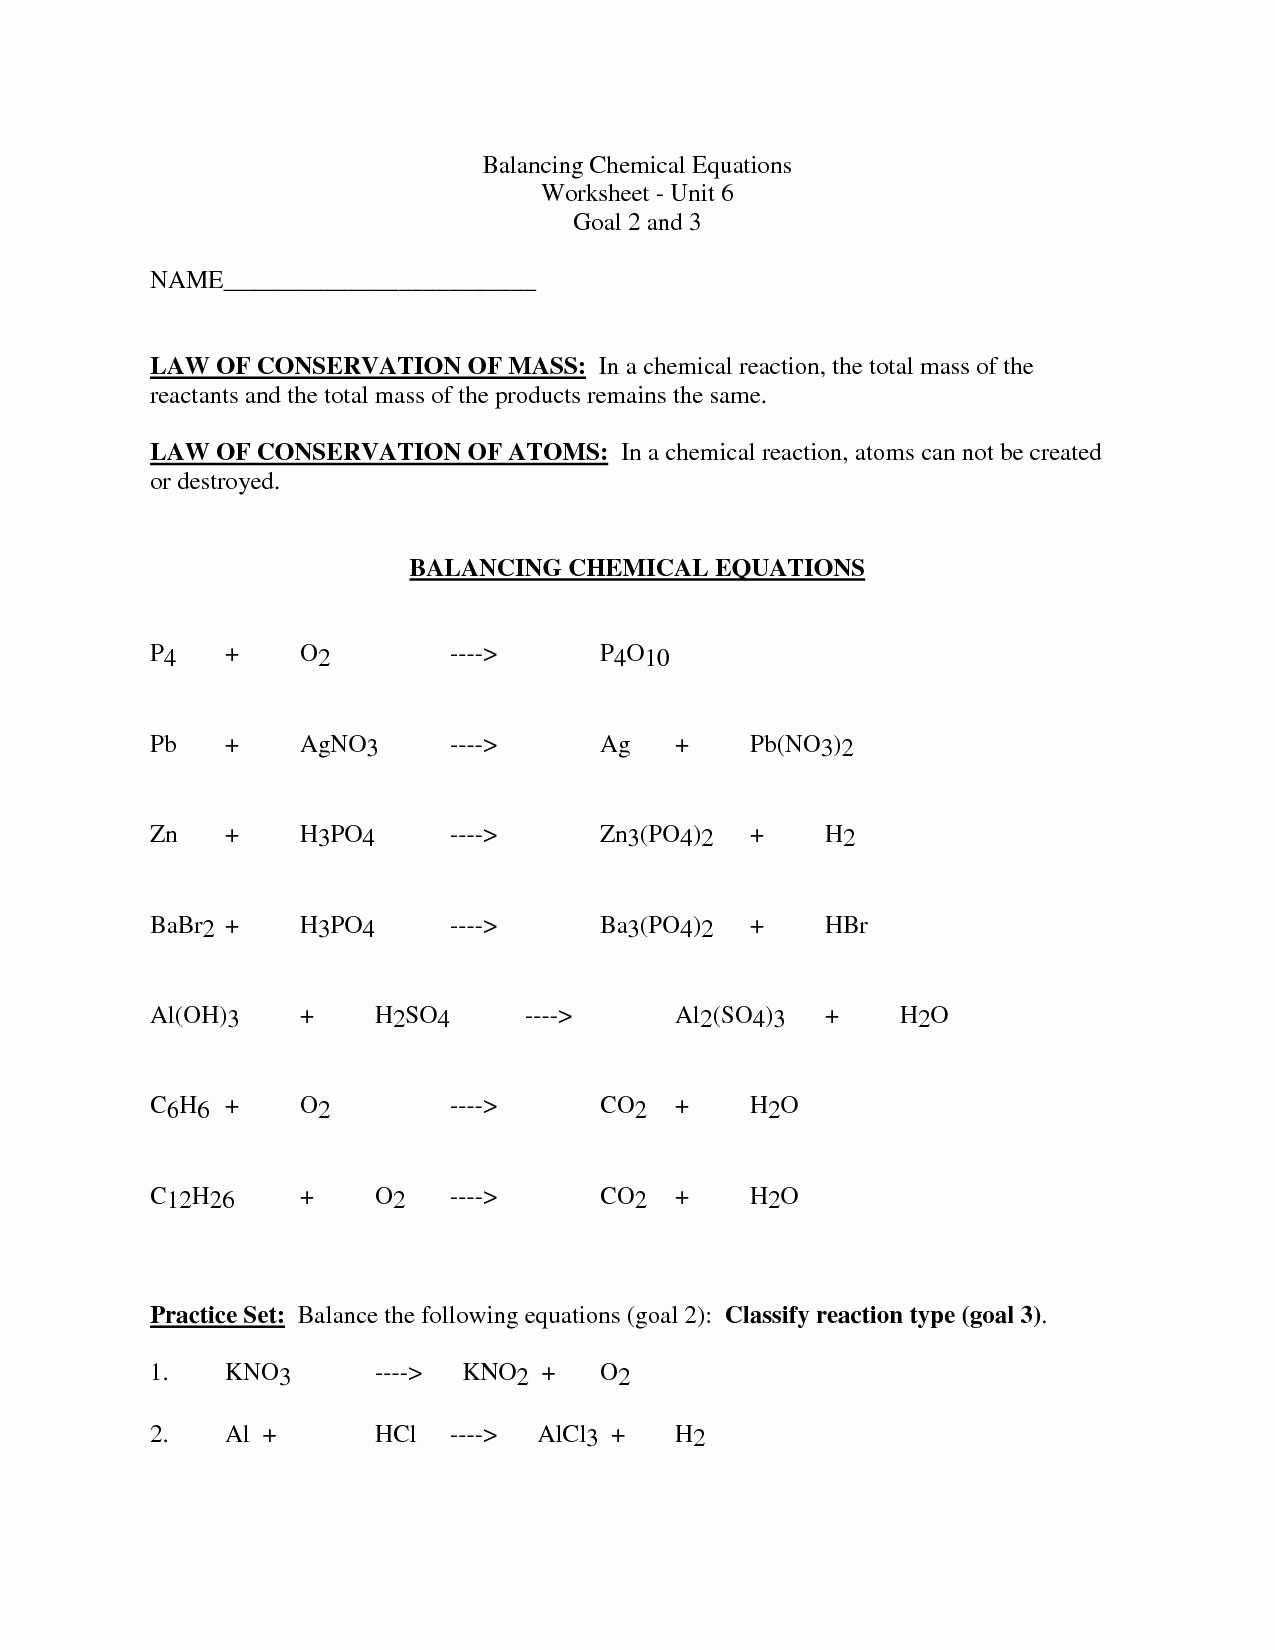 Balancing Equations Worksheet Answers Elegant 12 Best Of